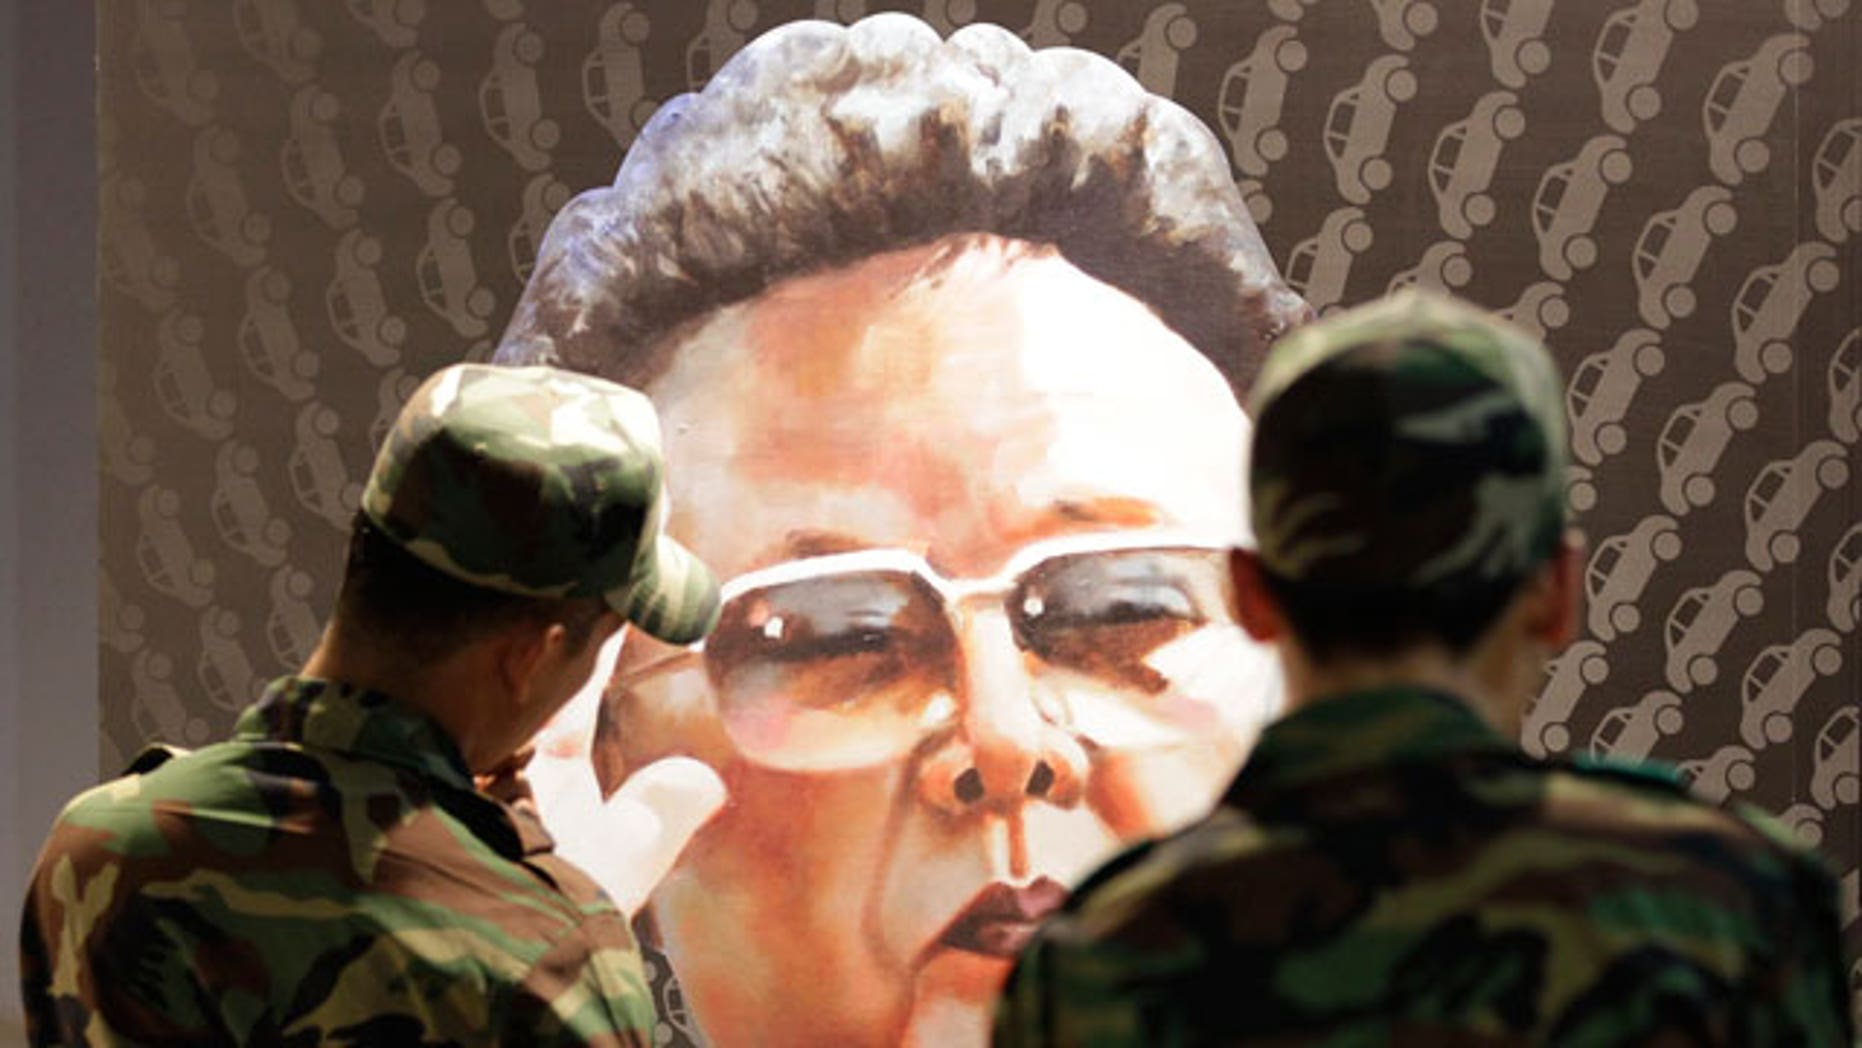 South Korean soldiers look at a poster of North Korean leader Kim Jong Il, painted by North Korean defector Sun Moo, at the Korean War exhibition in Seoul, South Korea, Wednesday, July 7, 2010. North Korea sent nearly three dozen relatives of former economic officials to a prison camp over the country's botched currency reform, a South Korean aid group Good Friends said on its website Tuesday.